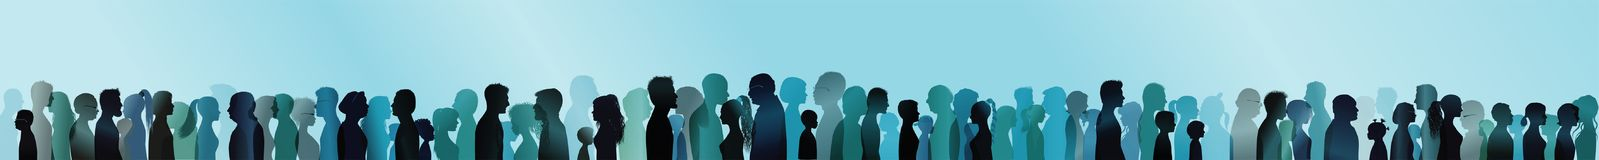 Ensemble d'isolement grand groupe de familles Silhouette color?e dans le profil Visage t?te community Exposition multiple bleue d illustration libre de droits